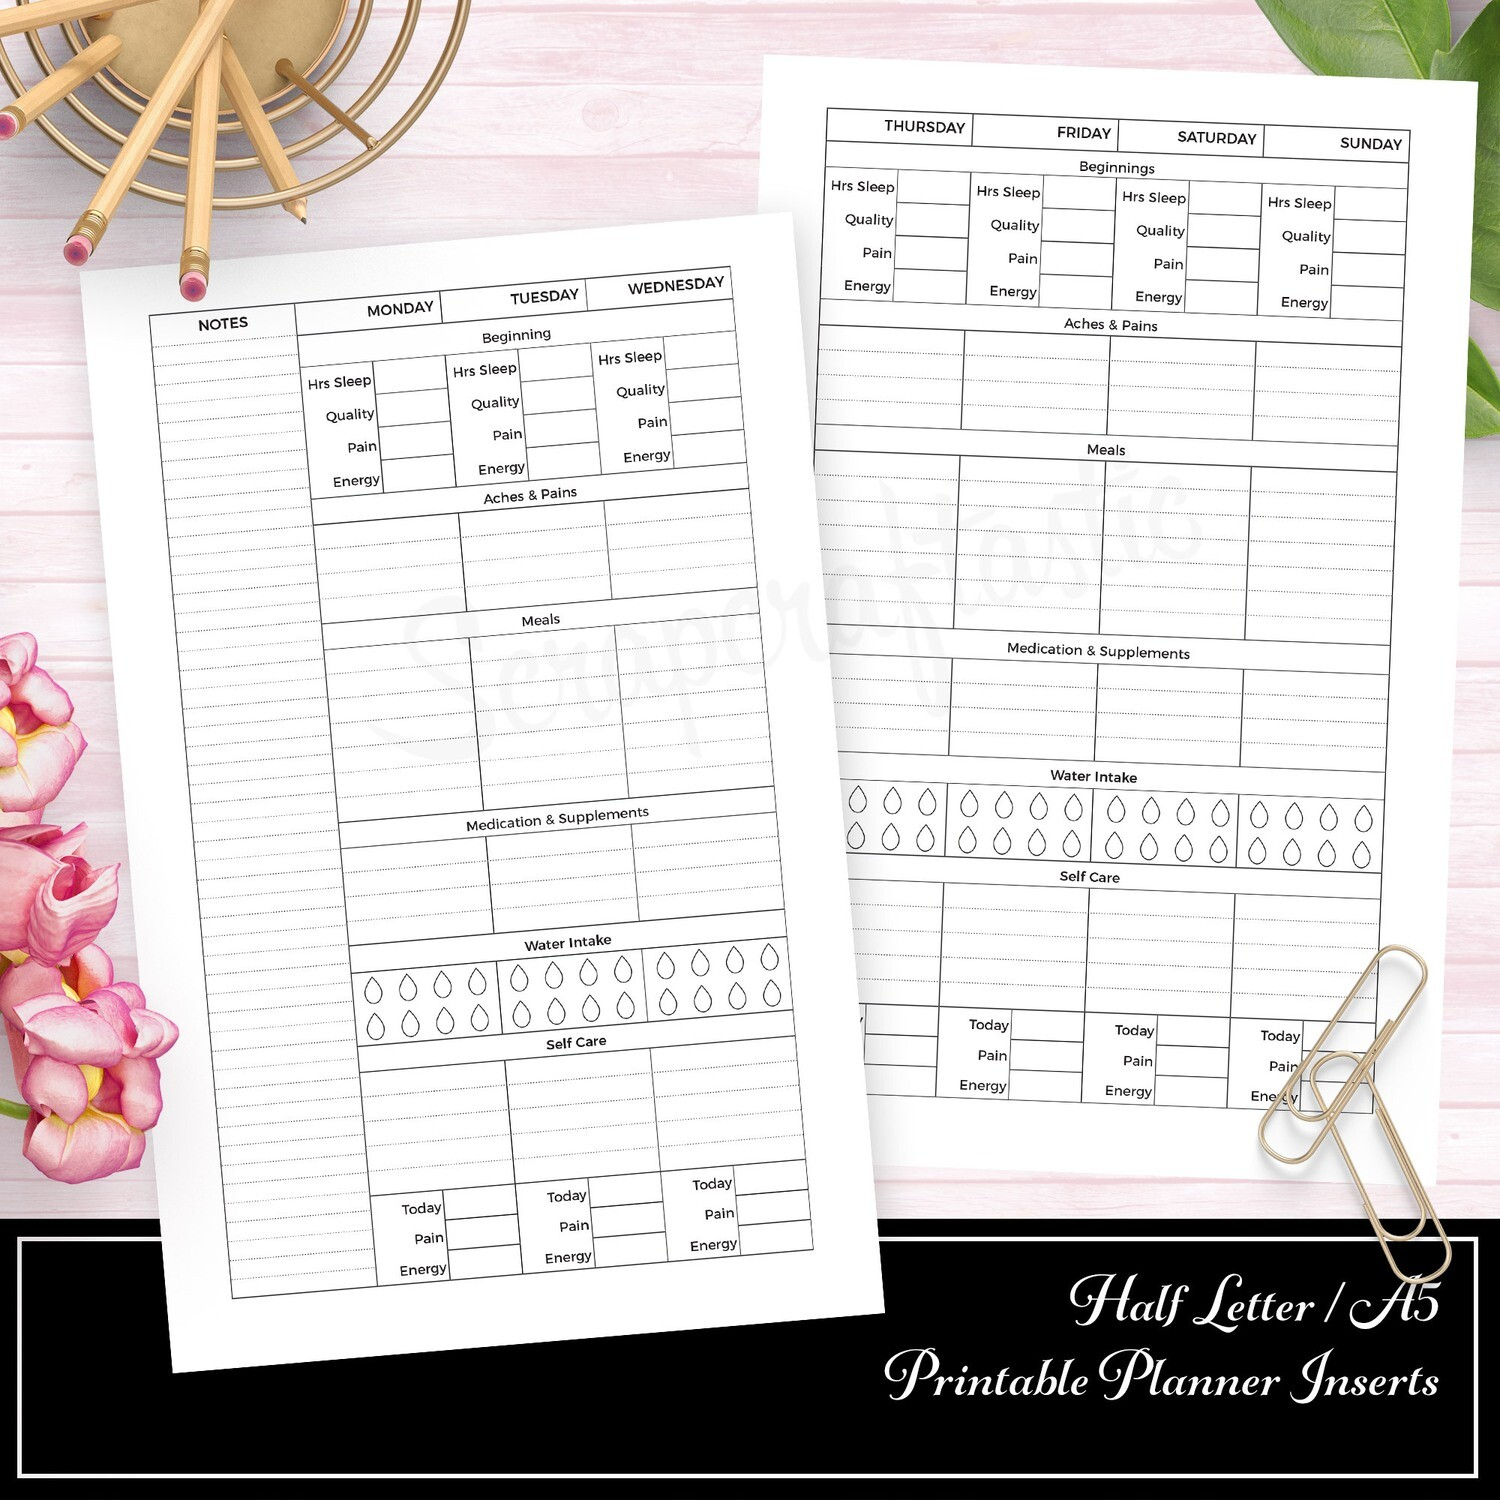 HALF LETTER A5 RINGS/DISC - Health and Wellness Weekly Printable Planner Insert